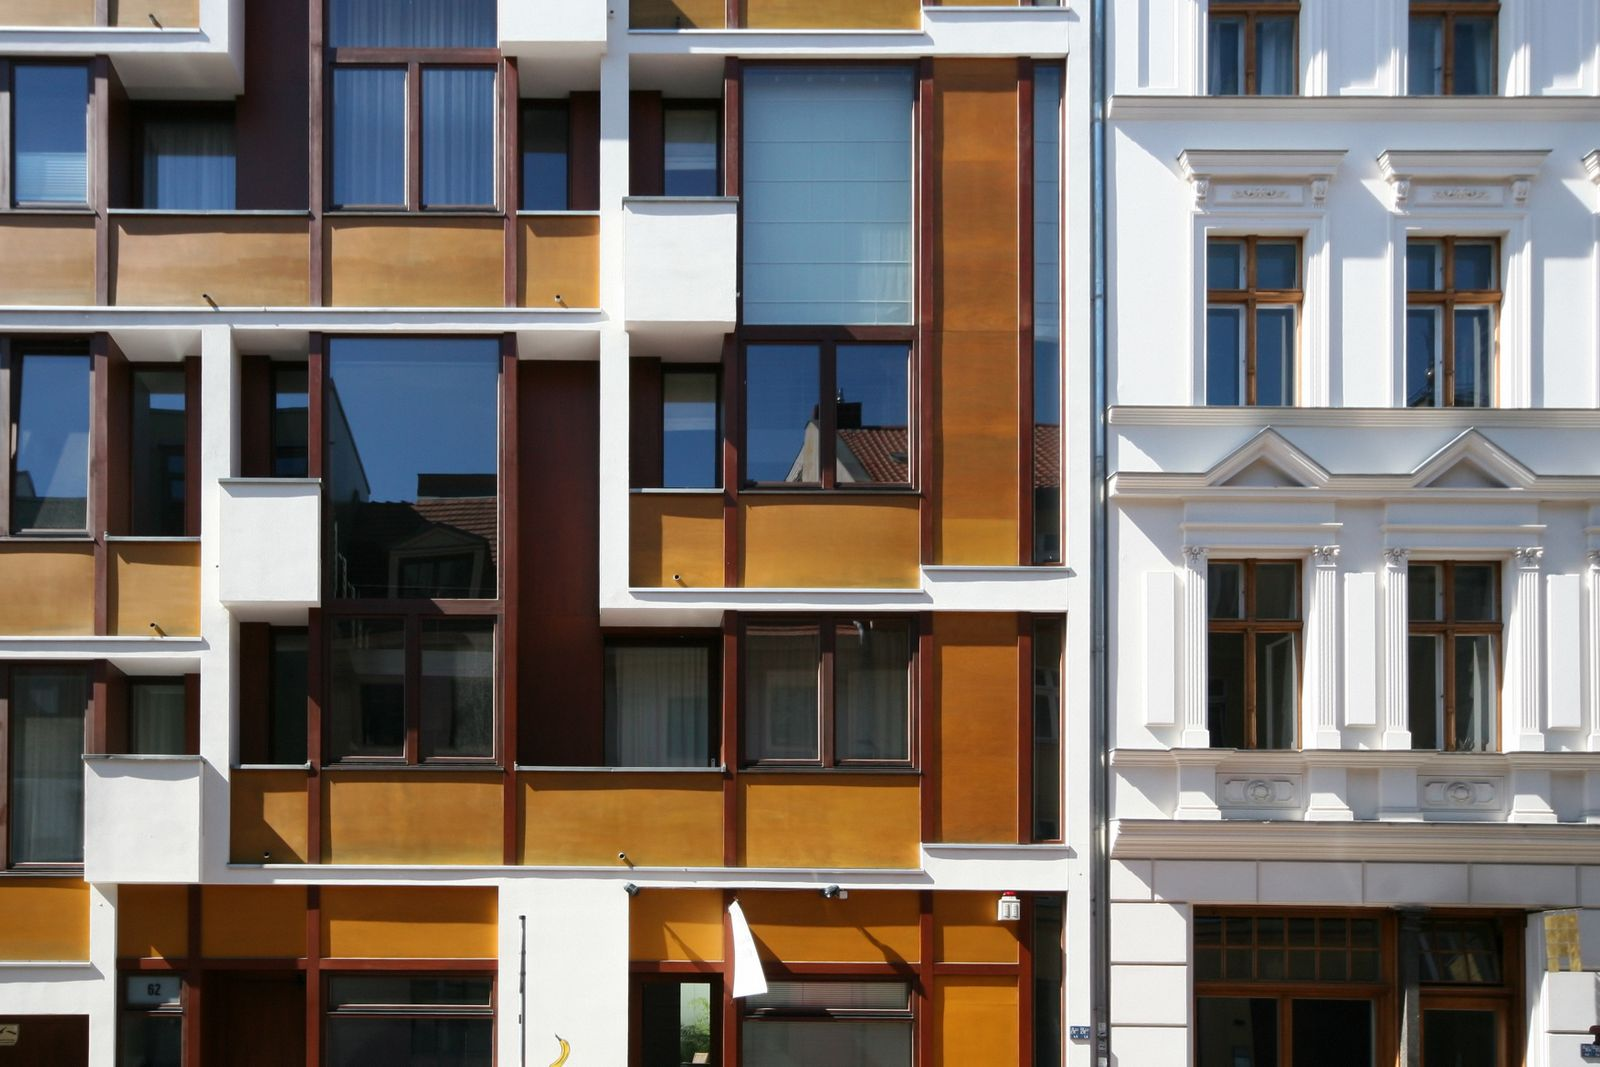 Contrast between old pre-war residential building and modern condominium housing building in the district of Mitte, in Berlin, Germany